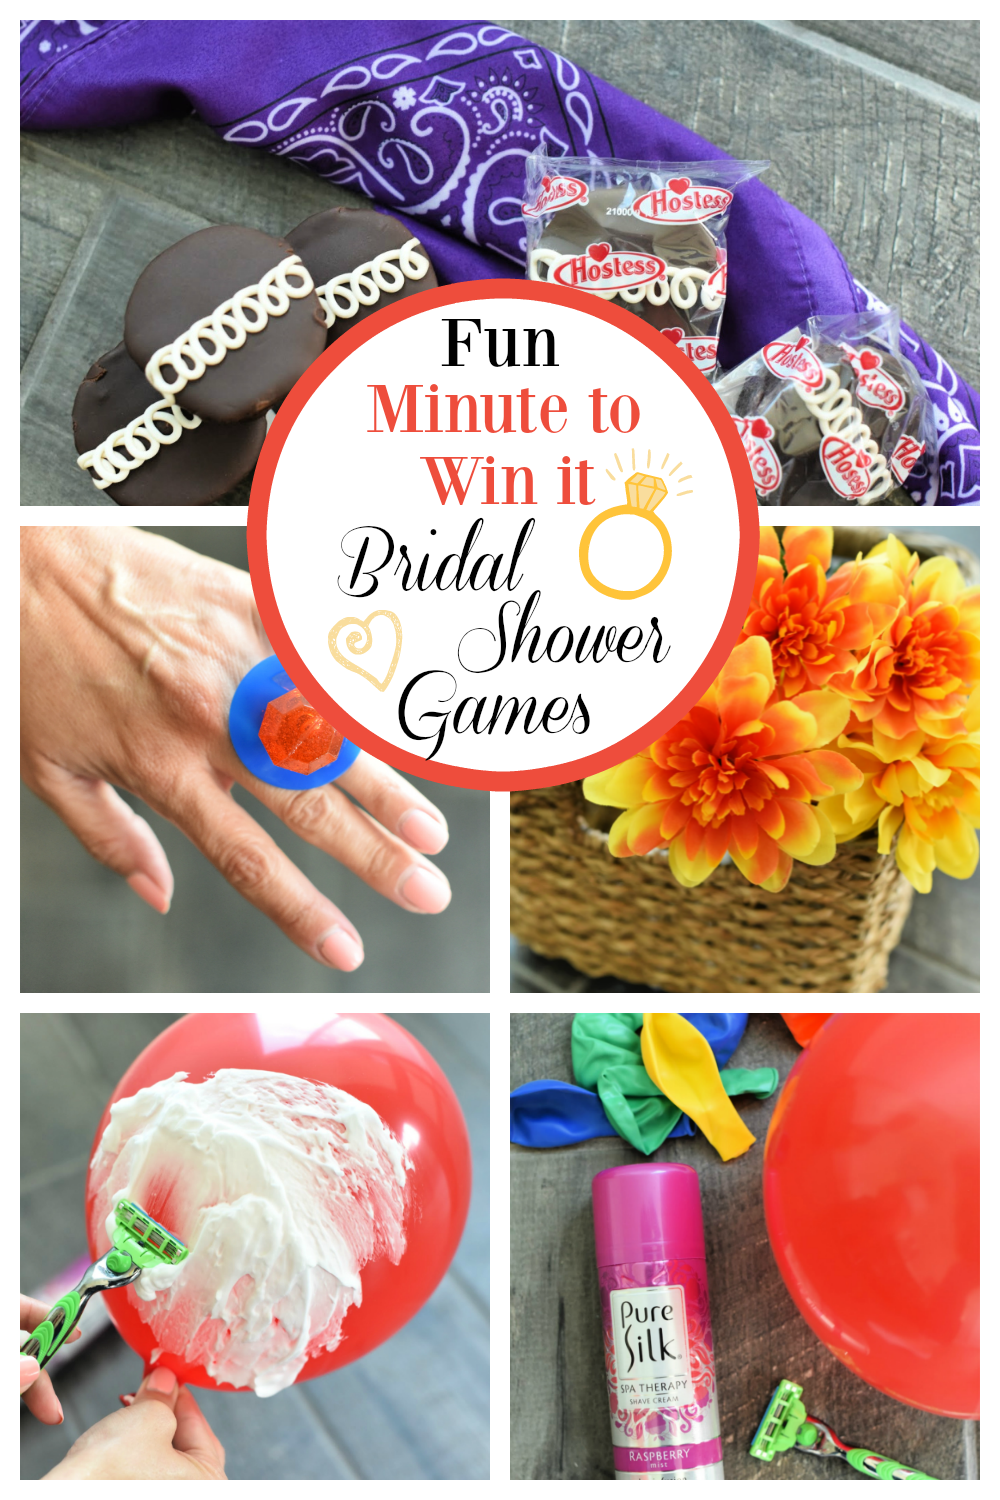 Bridal Shower Minute to Win it Games. Fun games to play at any bridal shower. #bridalshowergames #minutetowinitgames #fungames #bridalshowers